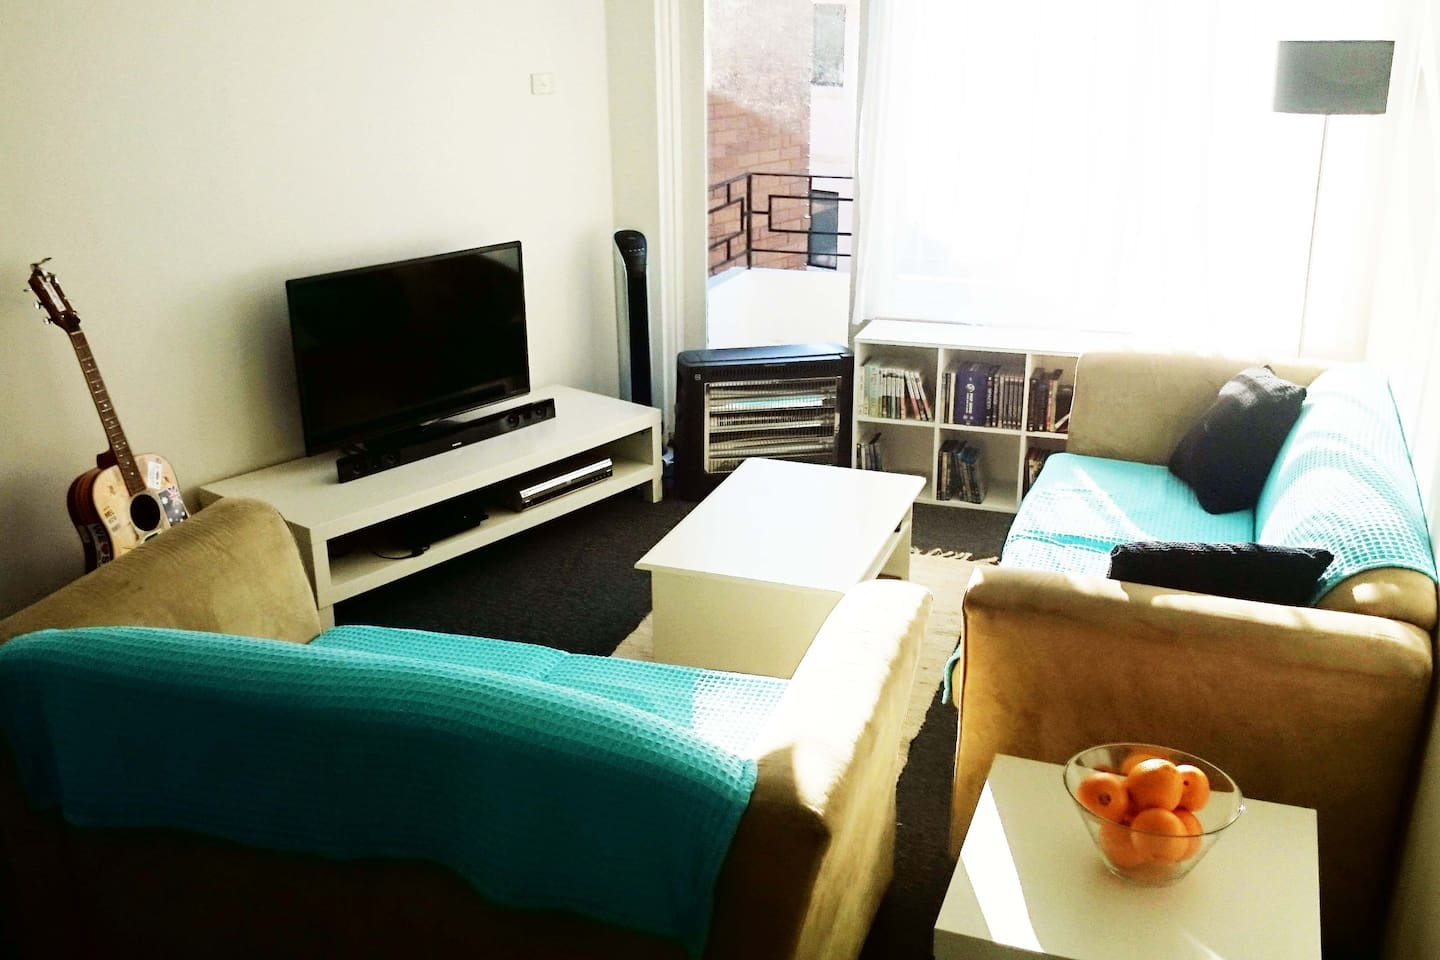 Comfy sitting room with 3 seater and 2 seater sofas. Large TV, DVD player and wireless speakers for music.